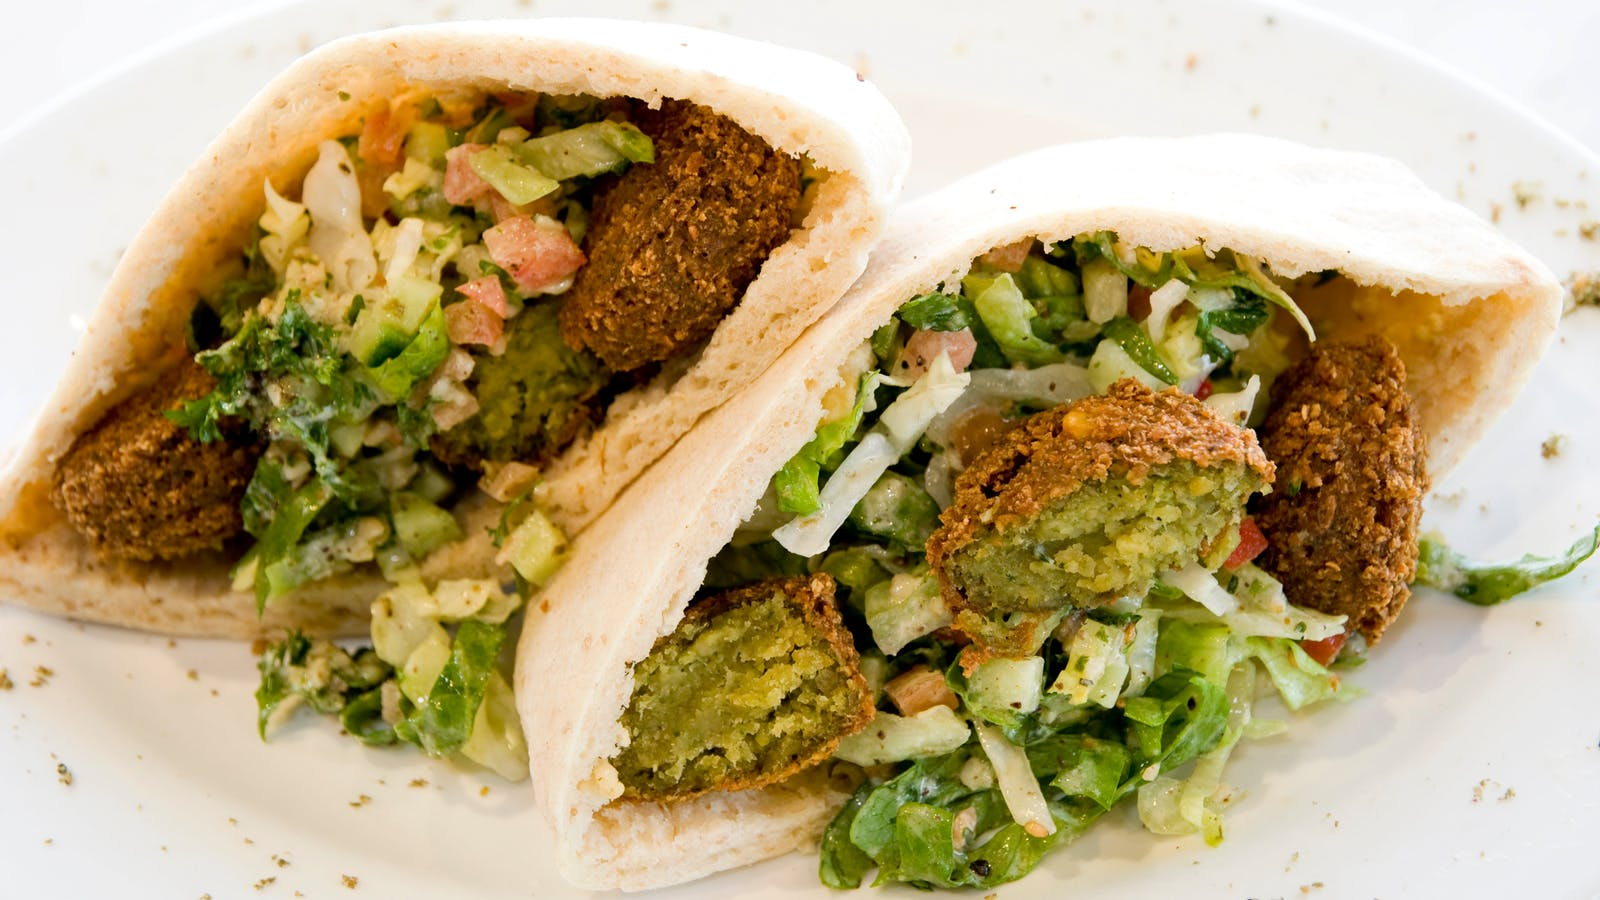 Pocket Pita filled with traditional falafels and salad